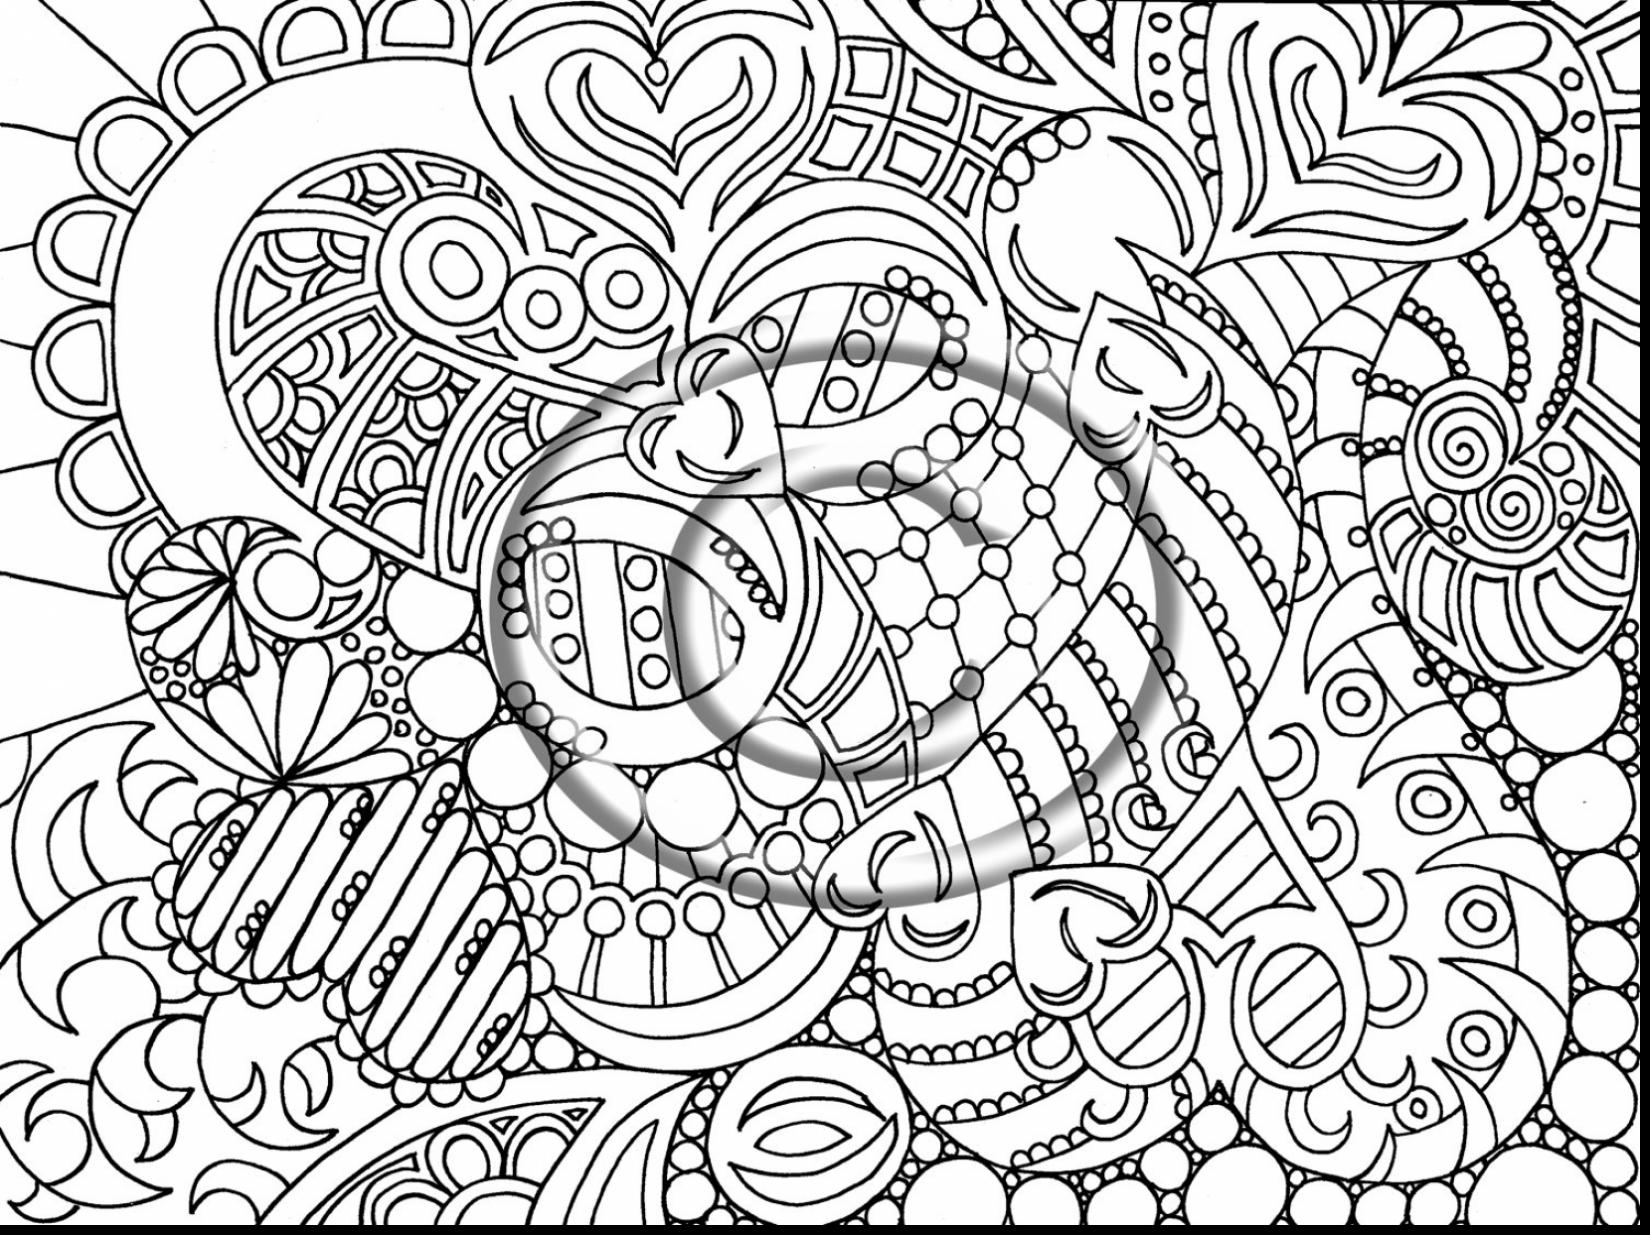 trippy coloring pages trippy sun drawing at getdrawings free download trippy coloring pages